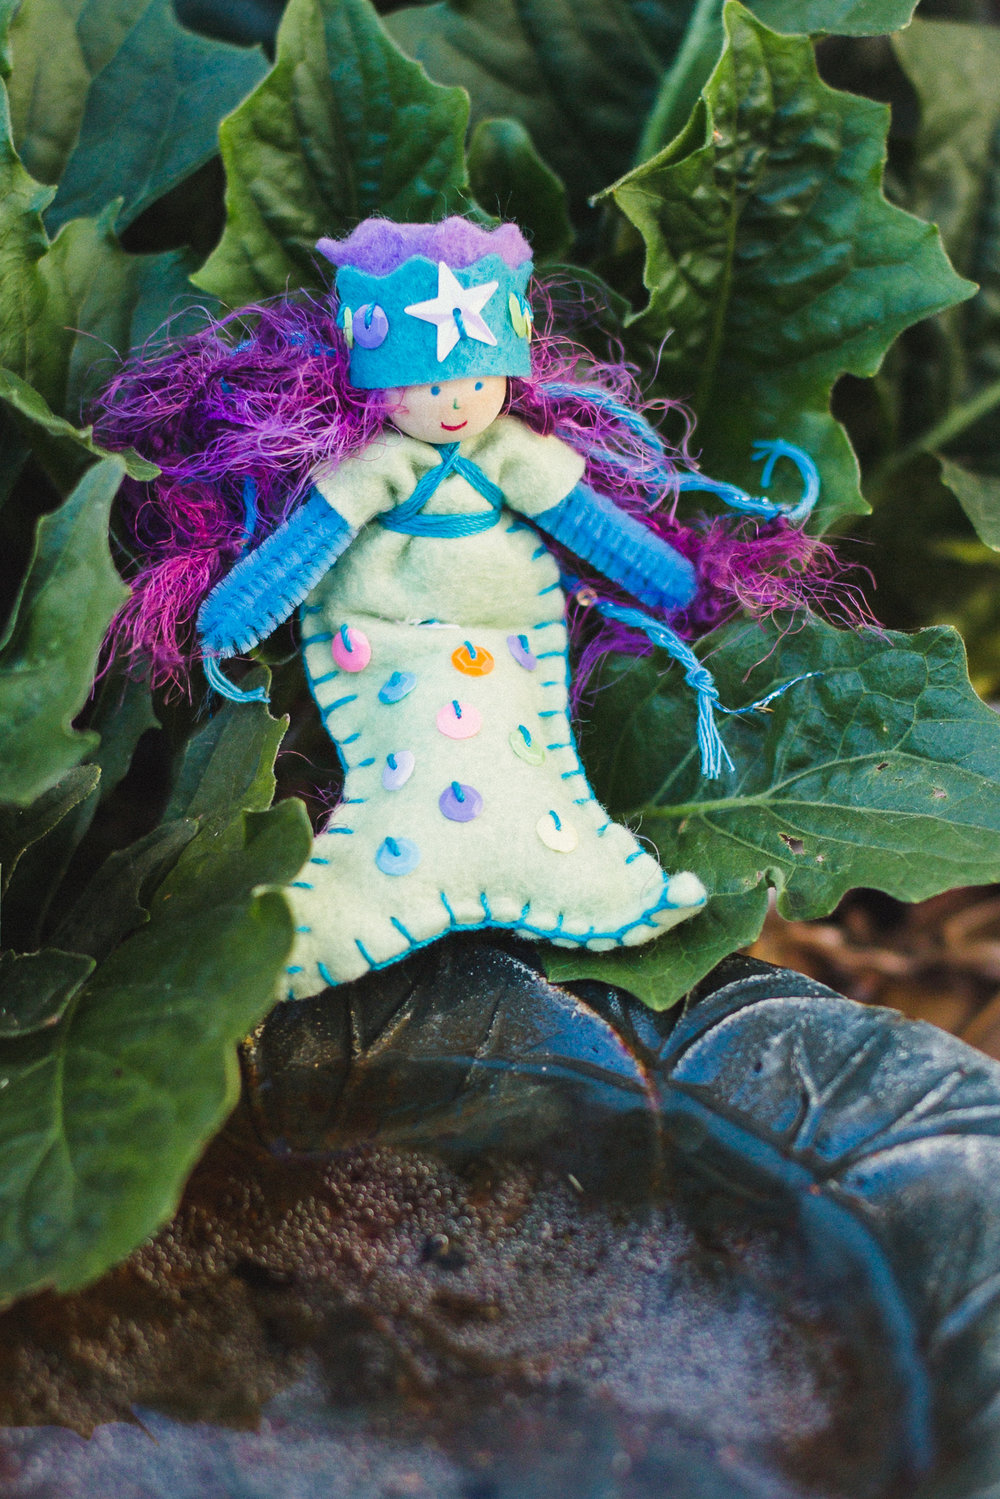 MermaidForestFairyCraftsAug2016-1.jpg